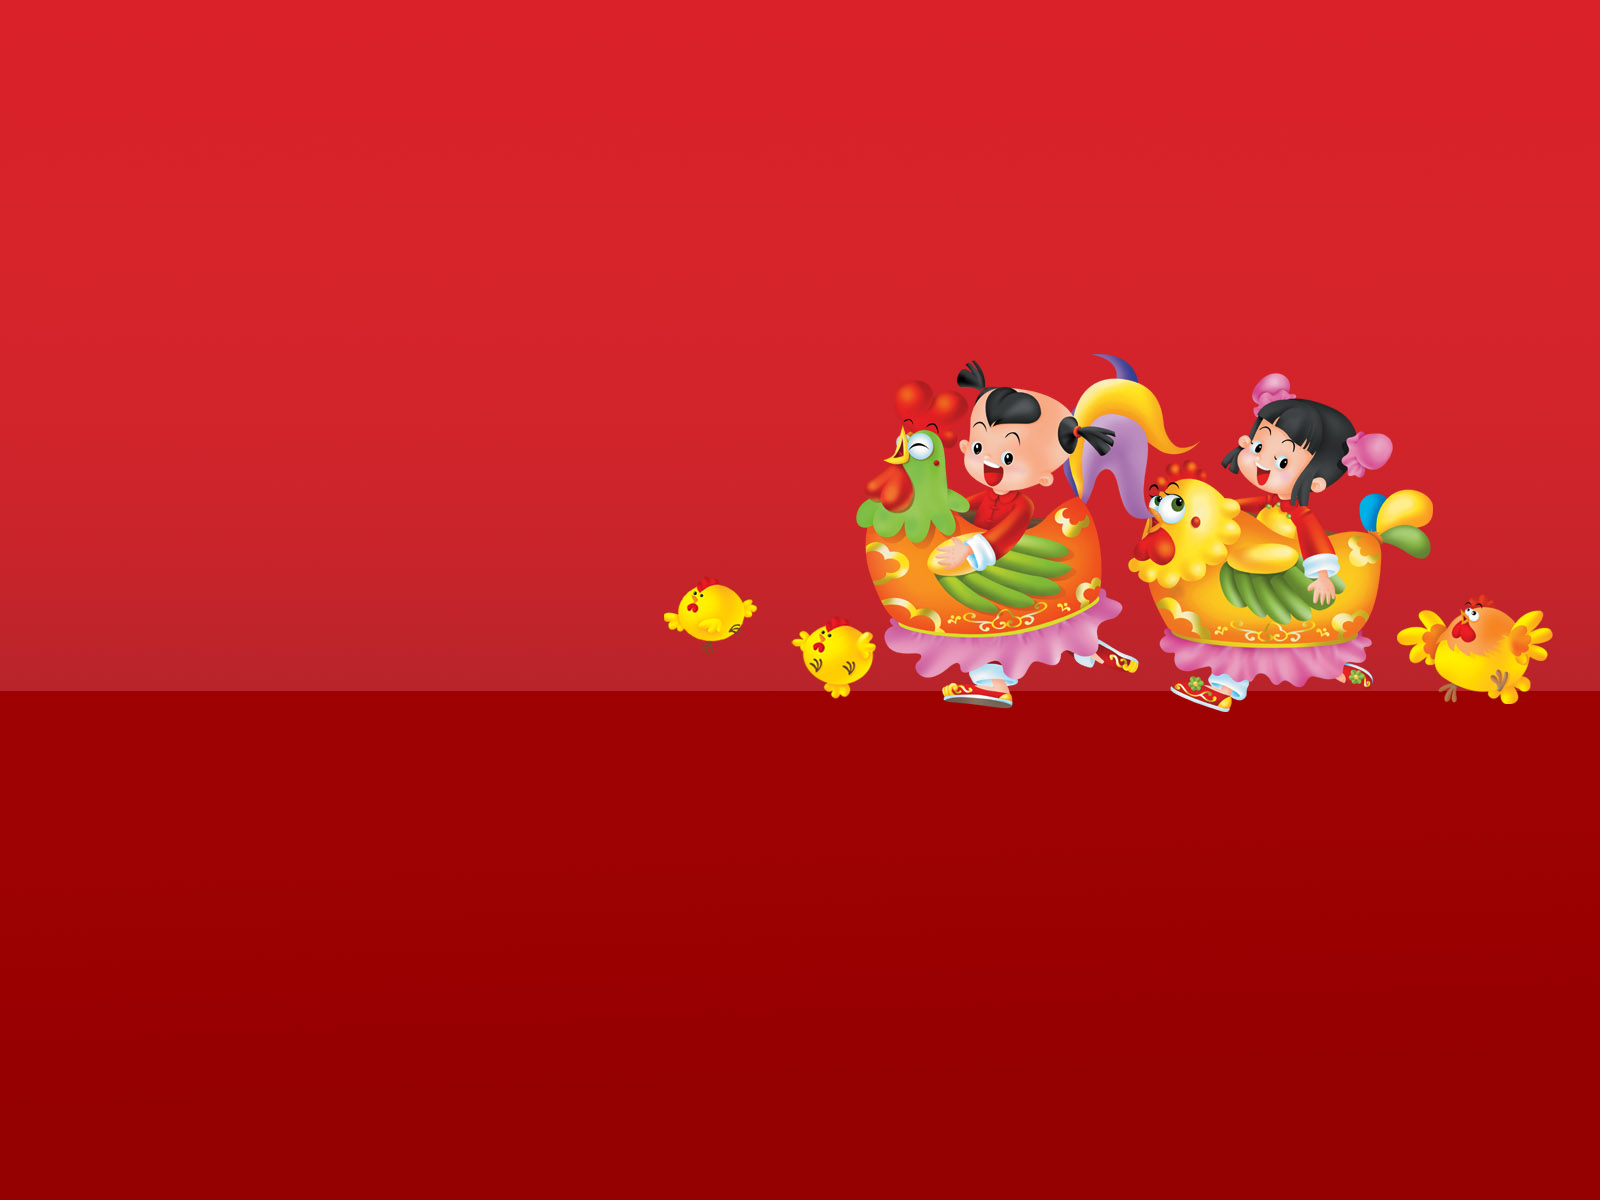 New Cartoon Wallpapers Chinese New Year Background 1600x1200 Download Hd Wallpaper Wallpapertip